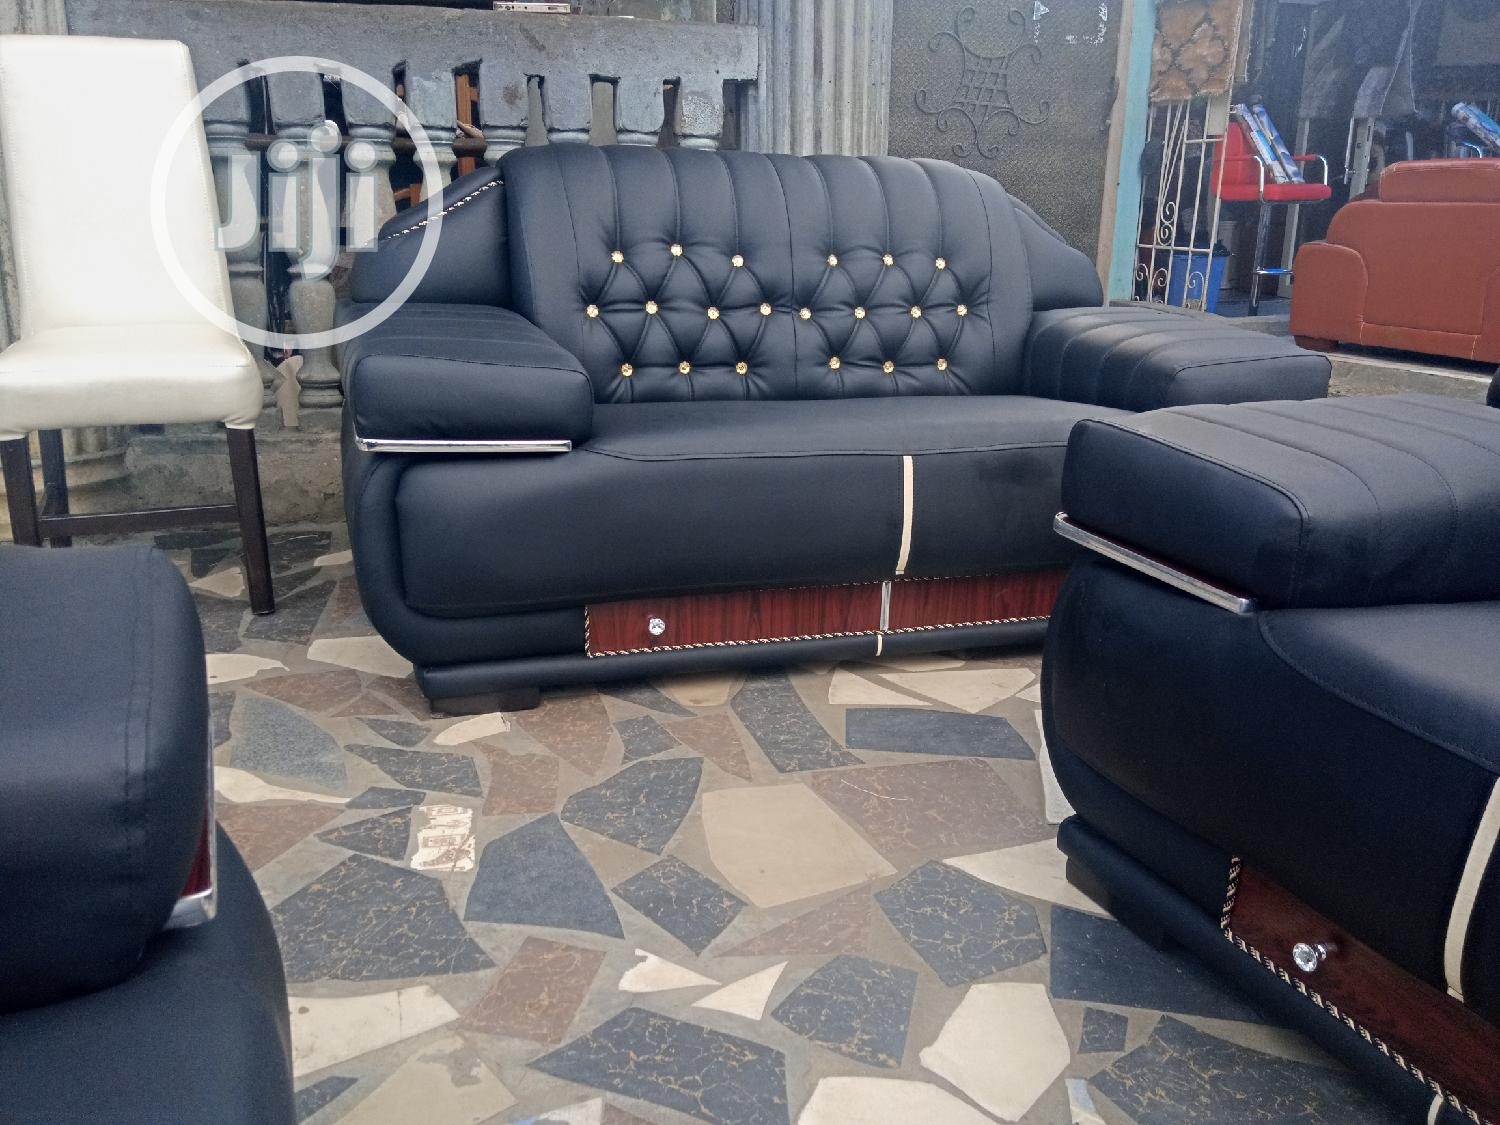 7 Seater Beautifully Designed High Quality and Durable Sofa / Chairs | Furniture for sale in Port-Harcourt, Rivers State, Nigeria